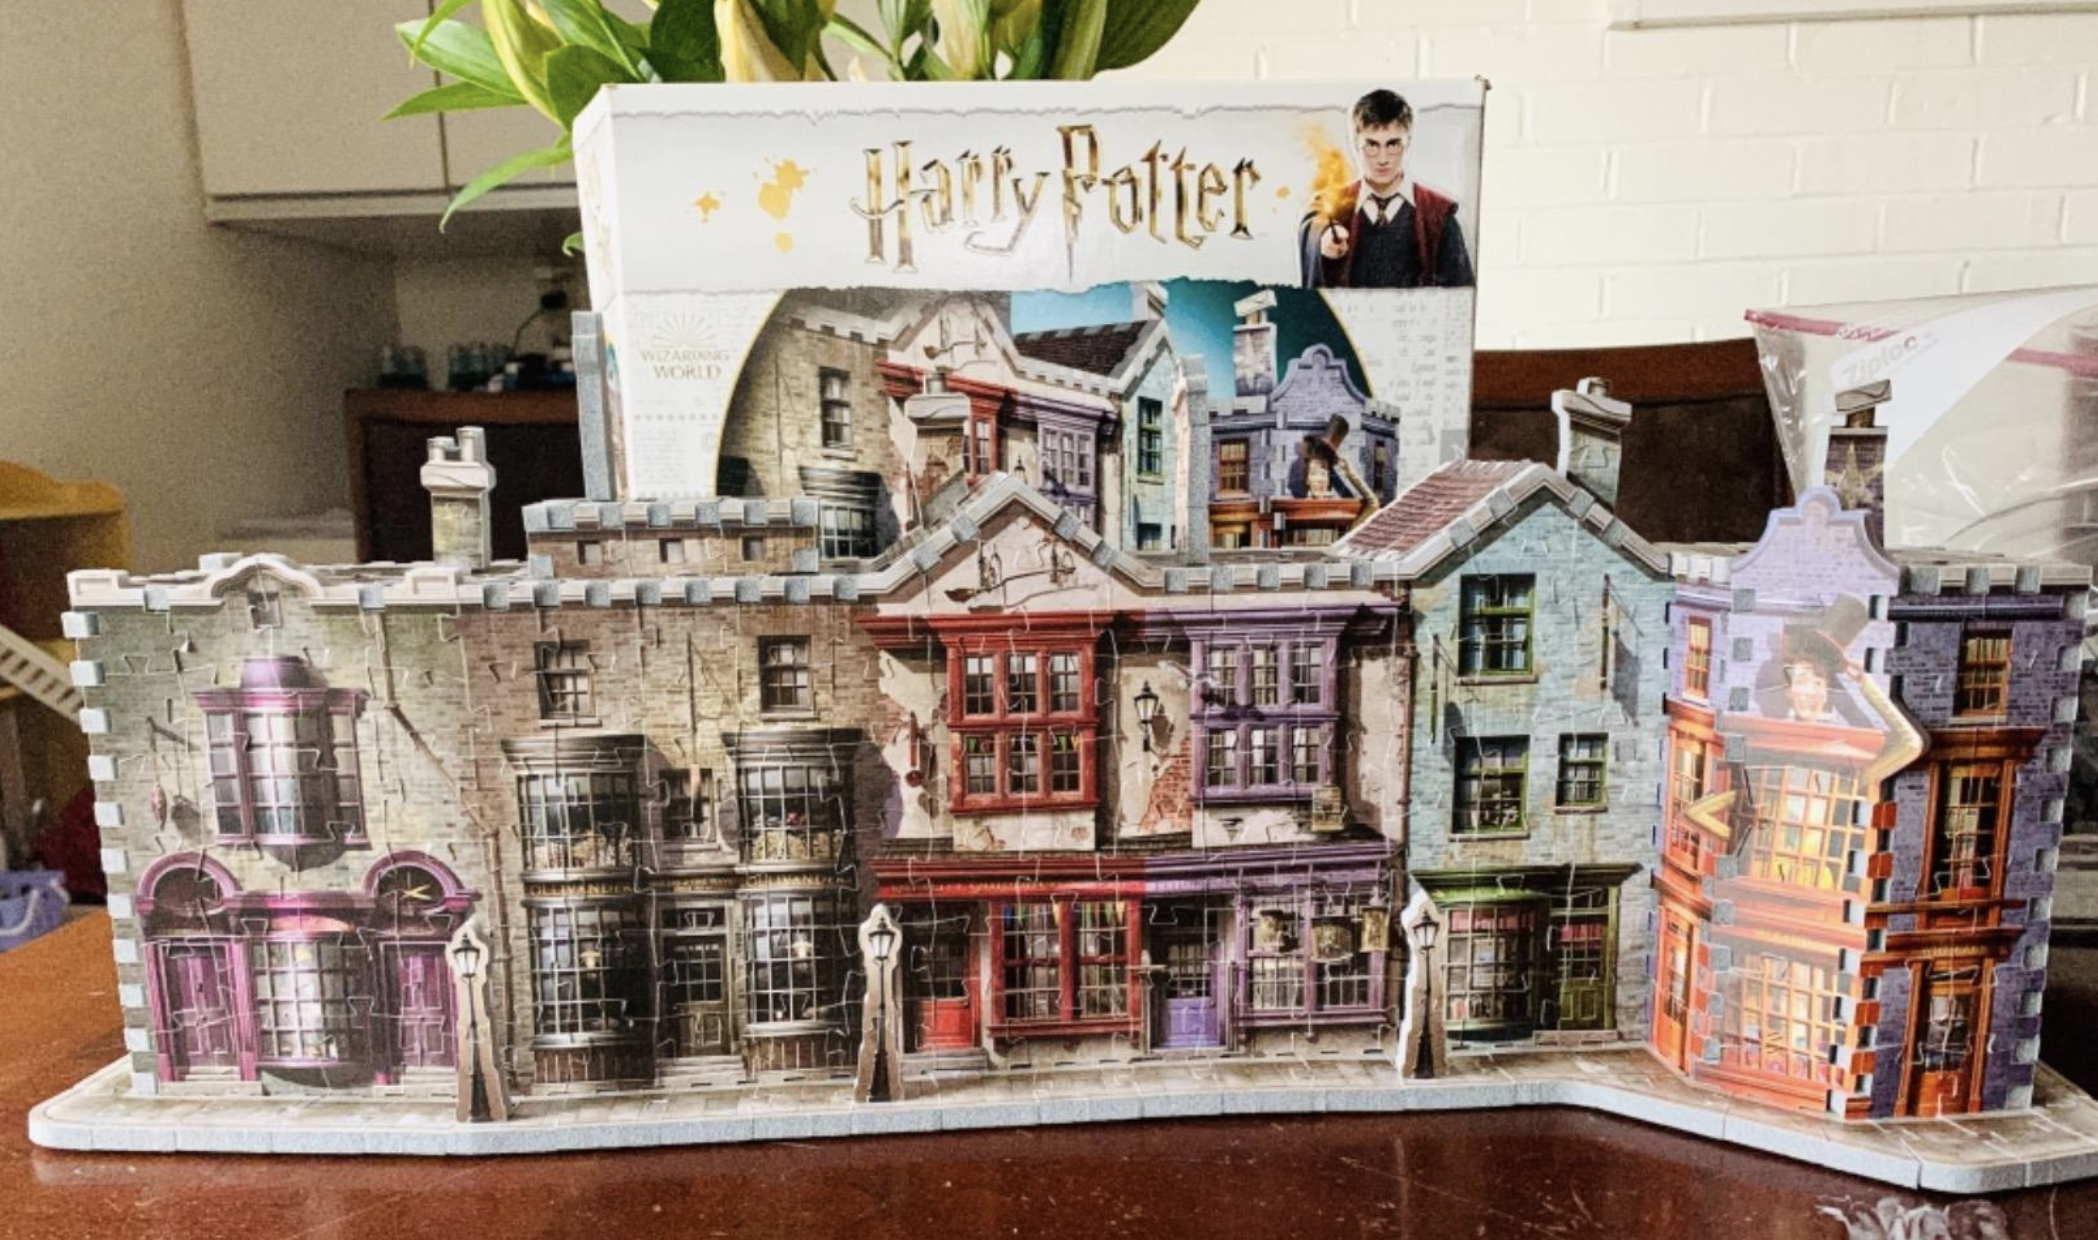 reviewer photo of the completed puzzle